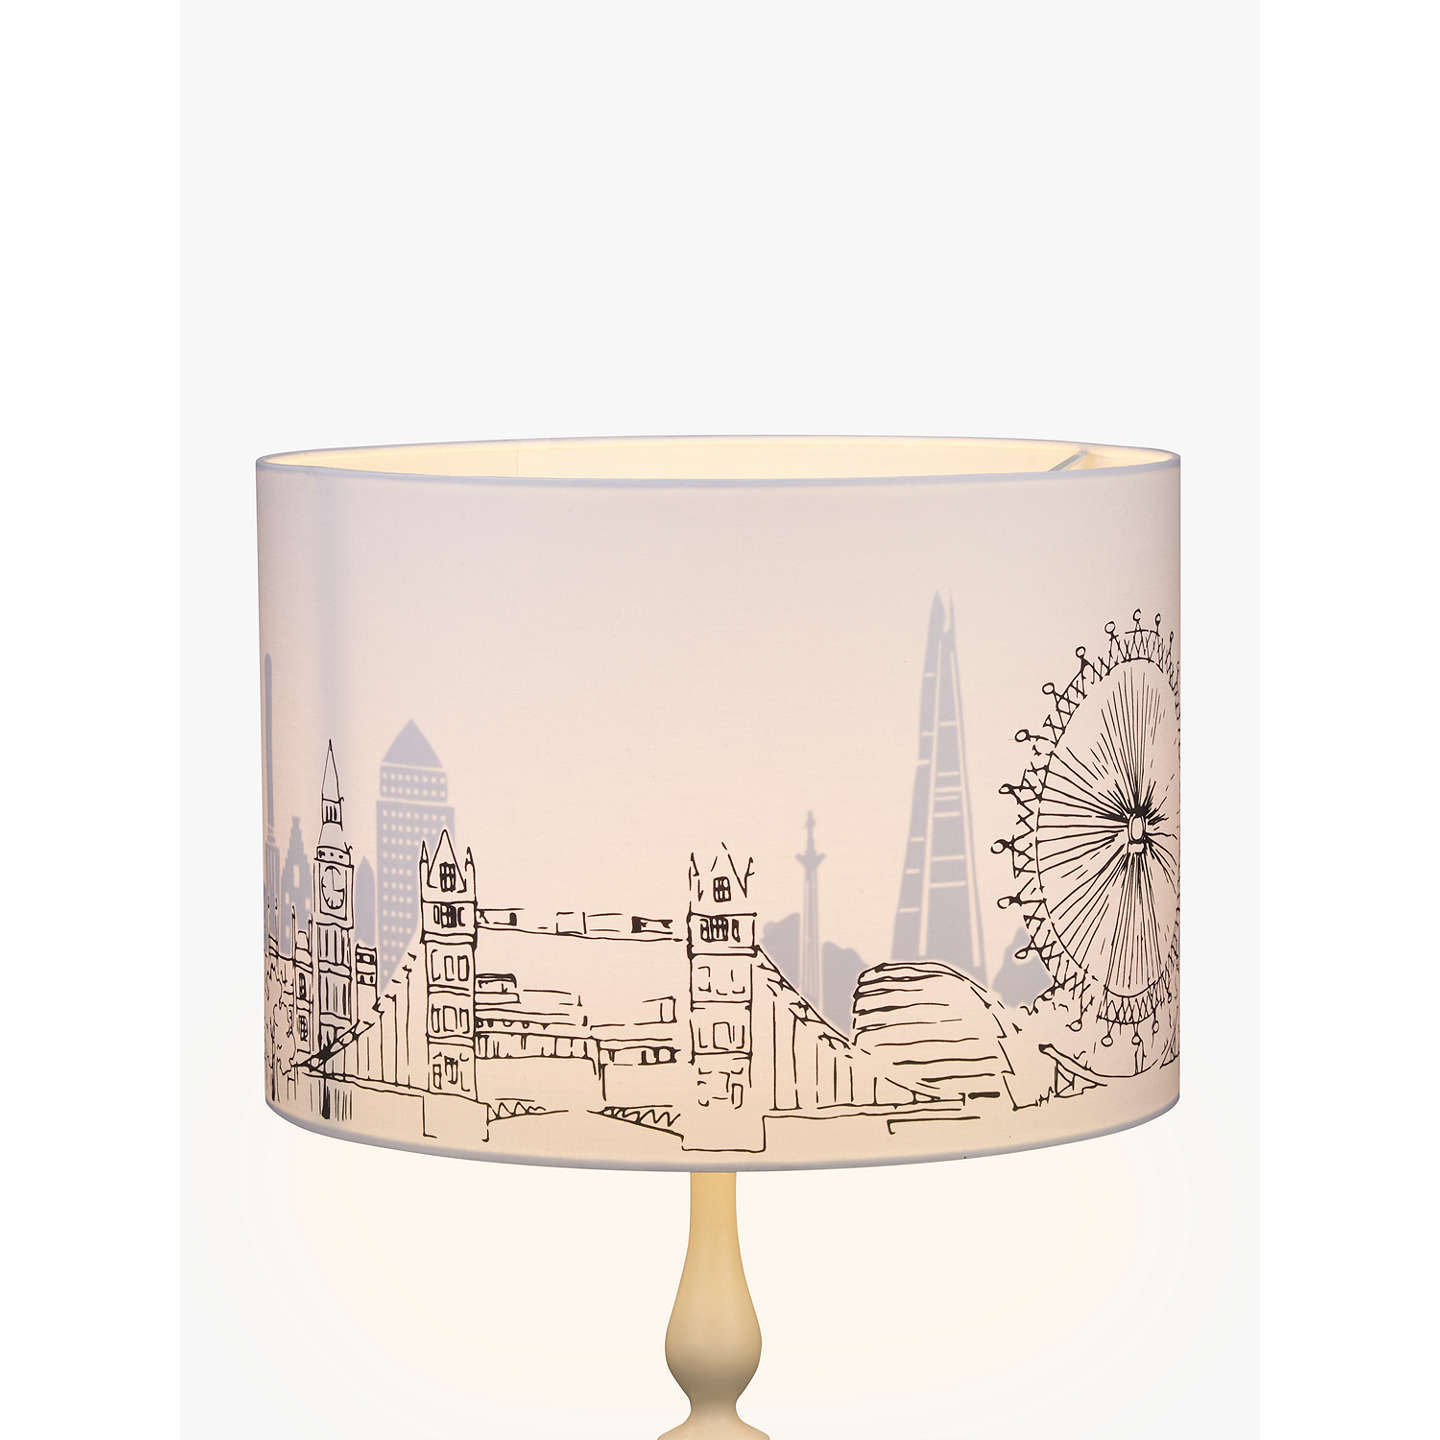 John lewis london cityscape lampshade white black 40cm at john lewis buyjohn lewis london cityscape lampshade white black 40cm online at johnlewis aloadofball Gallery